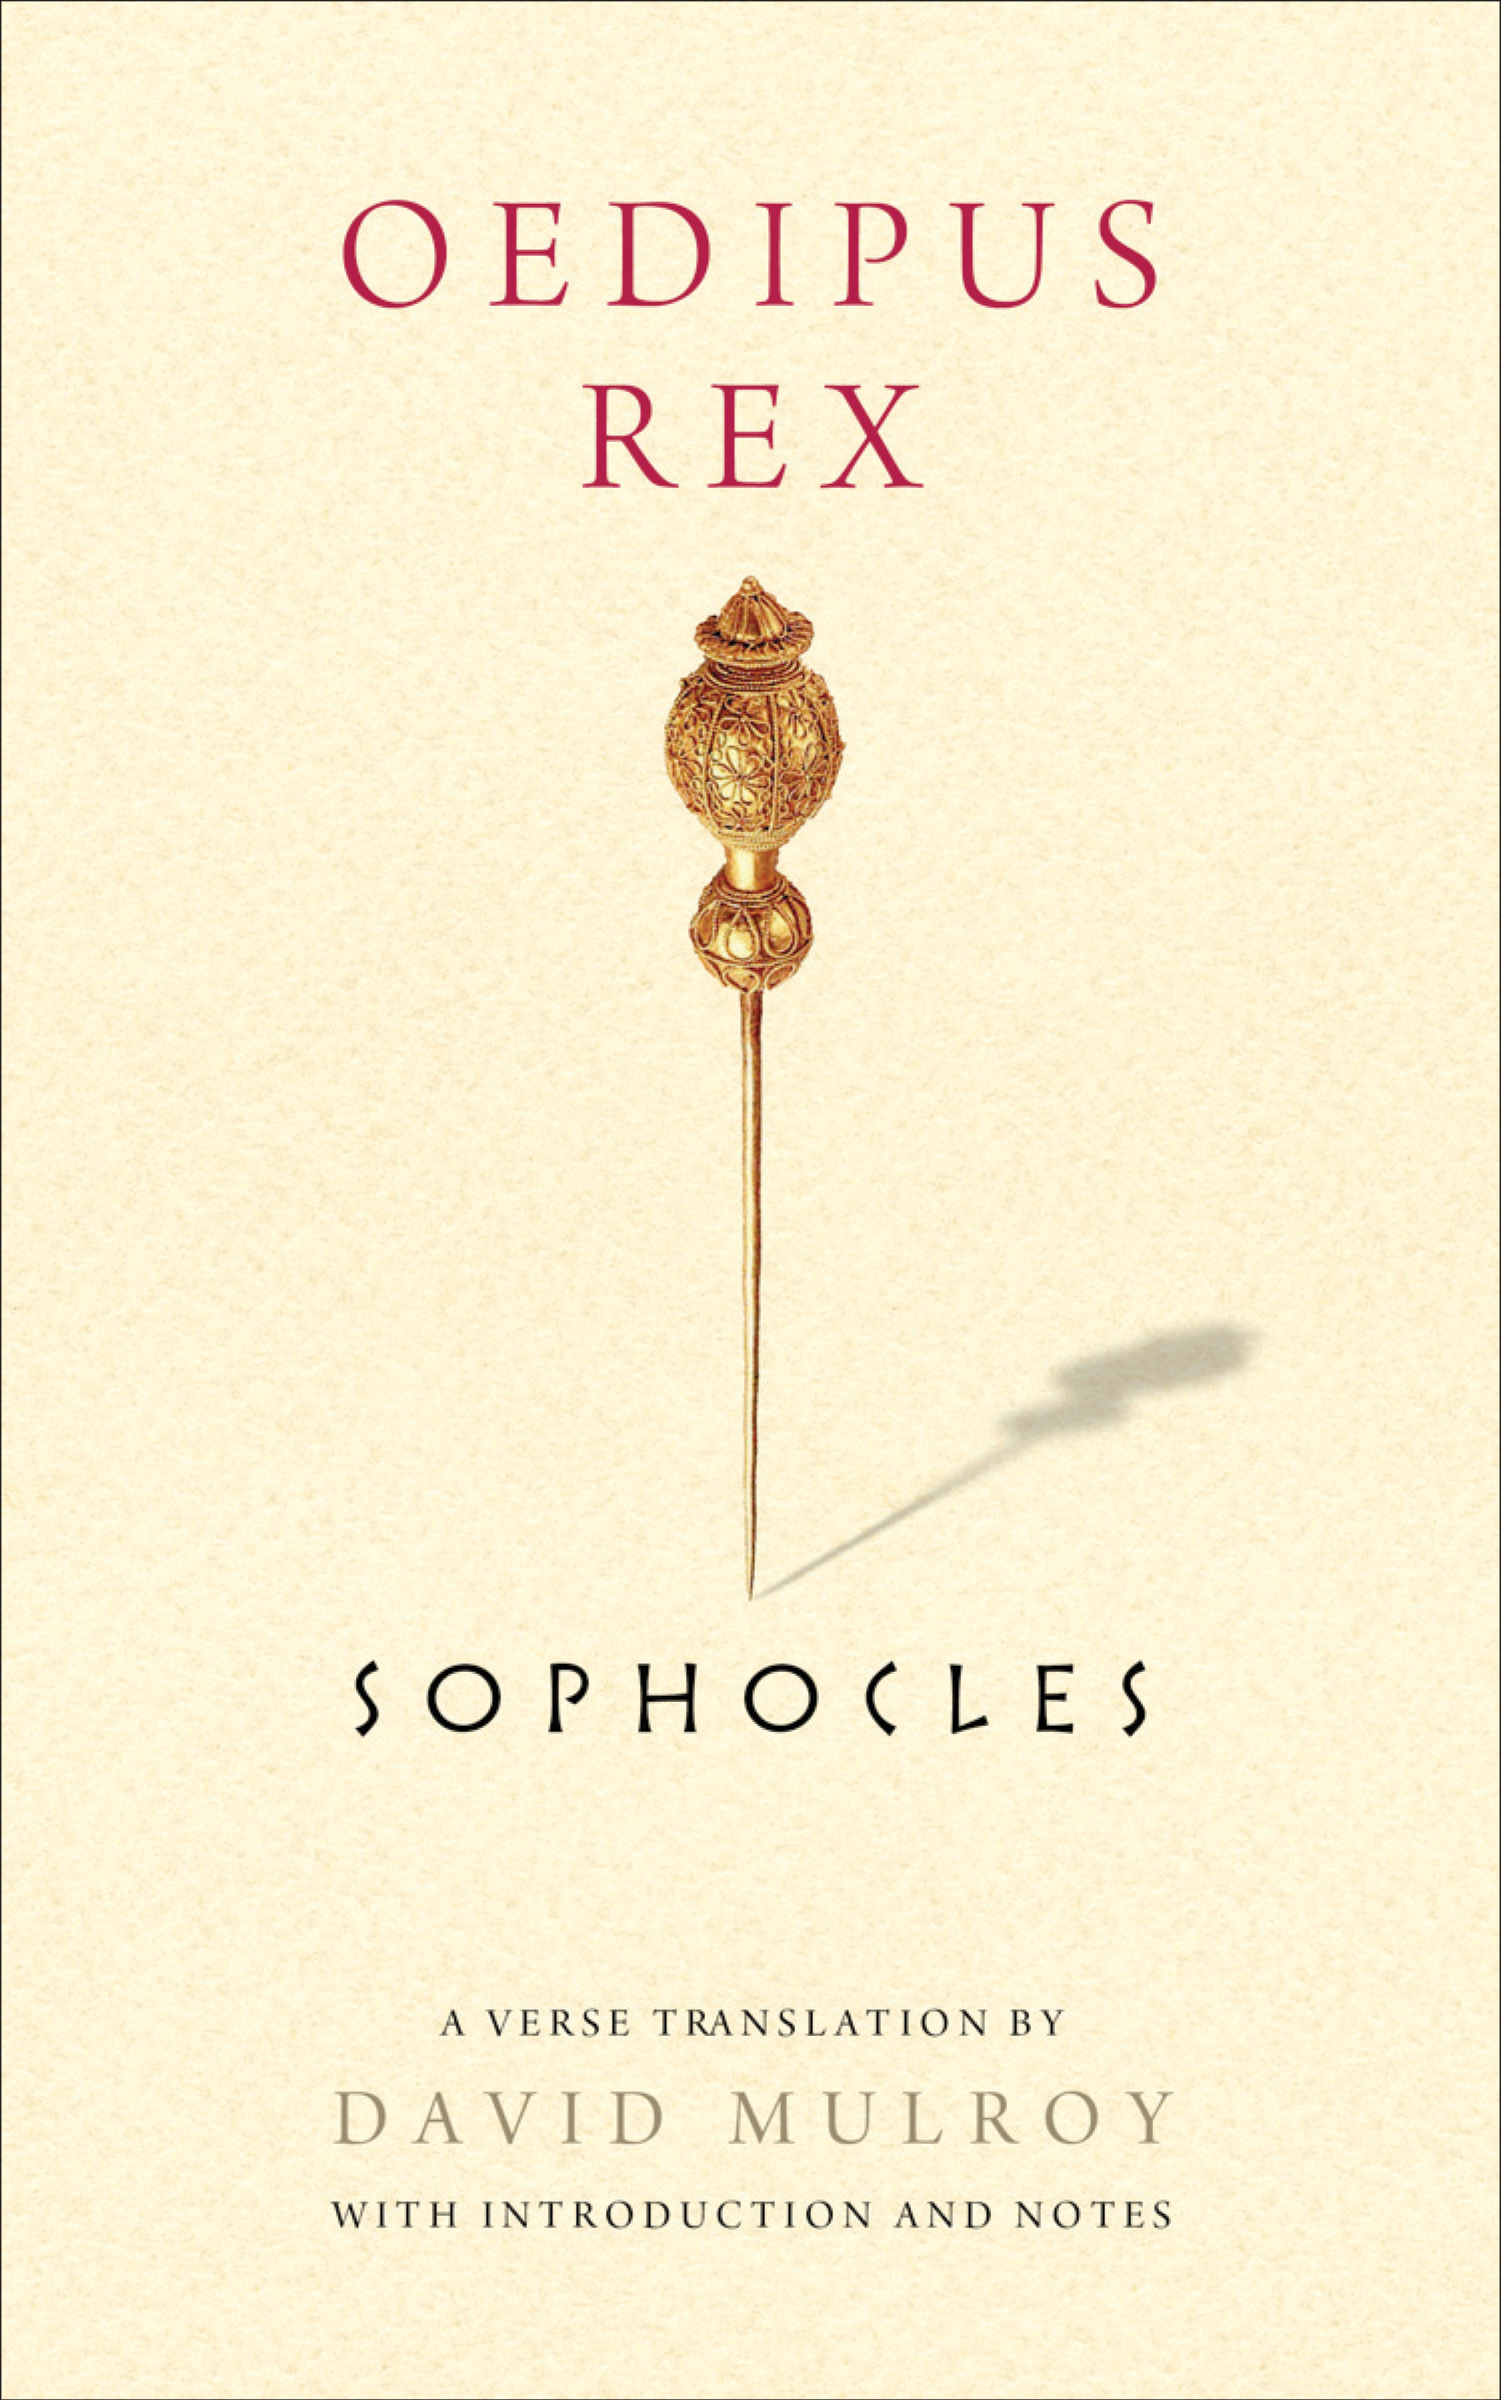 sophocles oedipus rex Harvard classics, vol 8, part 5 : oedipus the king : sophocles : unknowingly, oedipus kills his father, king laius of thebes, and marries his mother, jocasta.